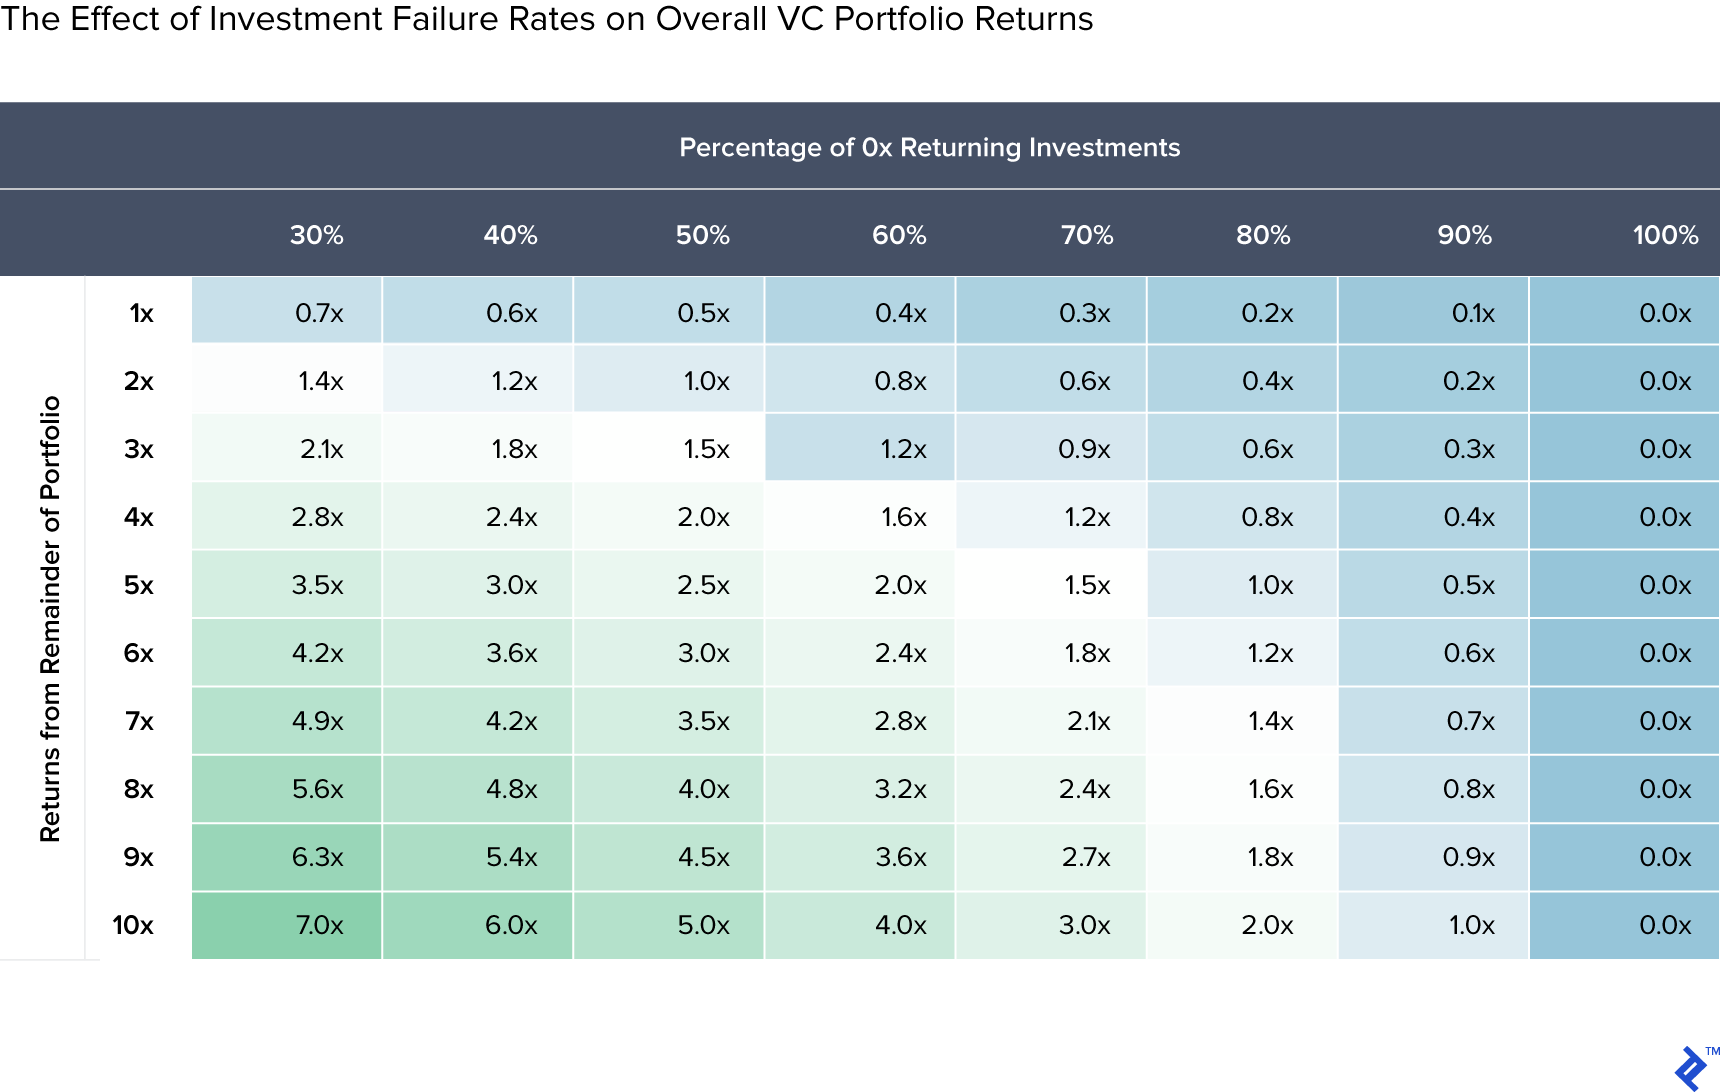 Table showing the effect of investment failure rates on overall VC portfolio returns.